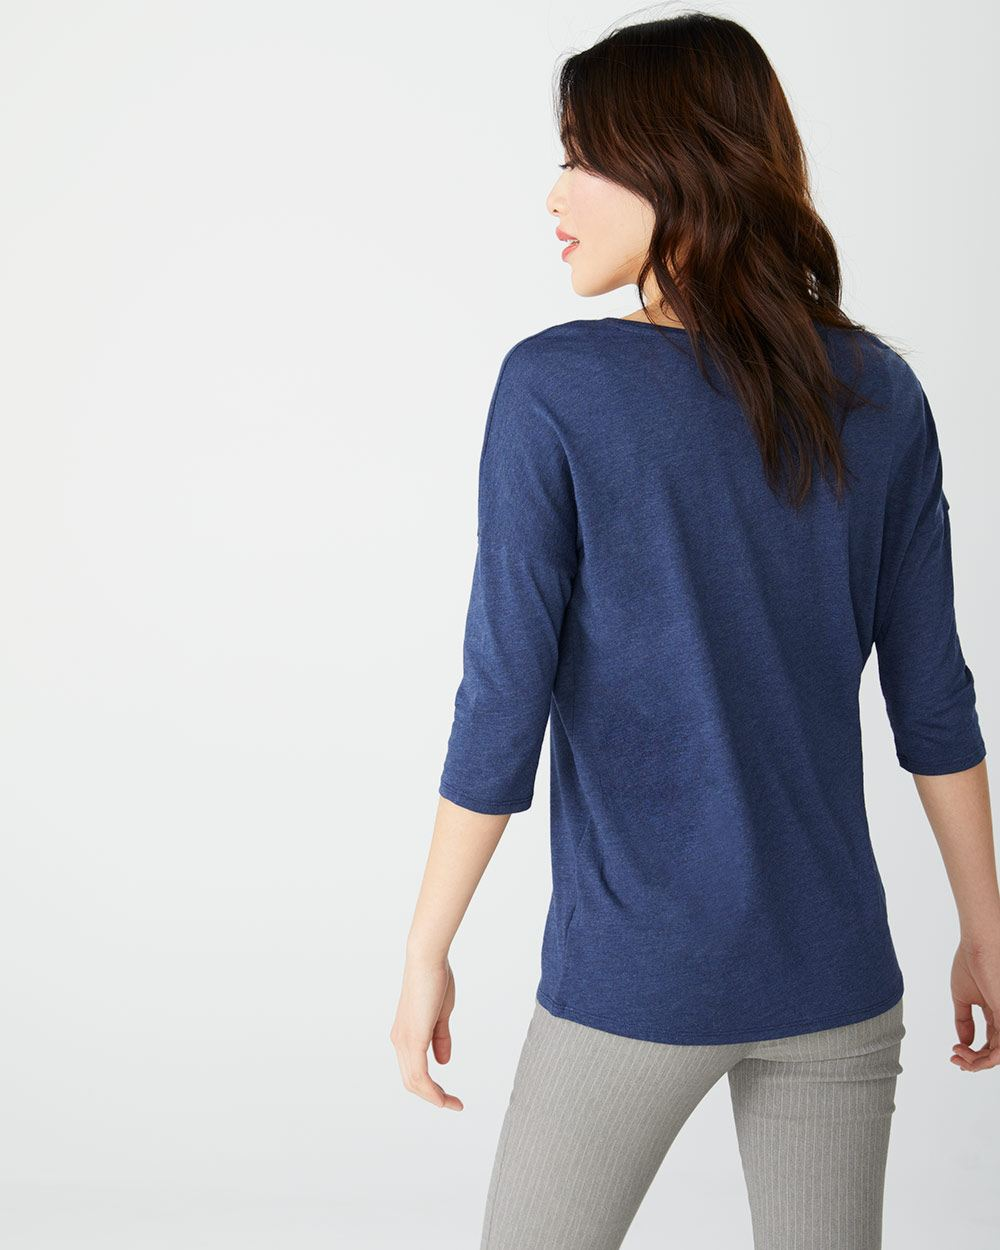 C&G V-neck cotton and modal 3/4 sleeve t-shirt